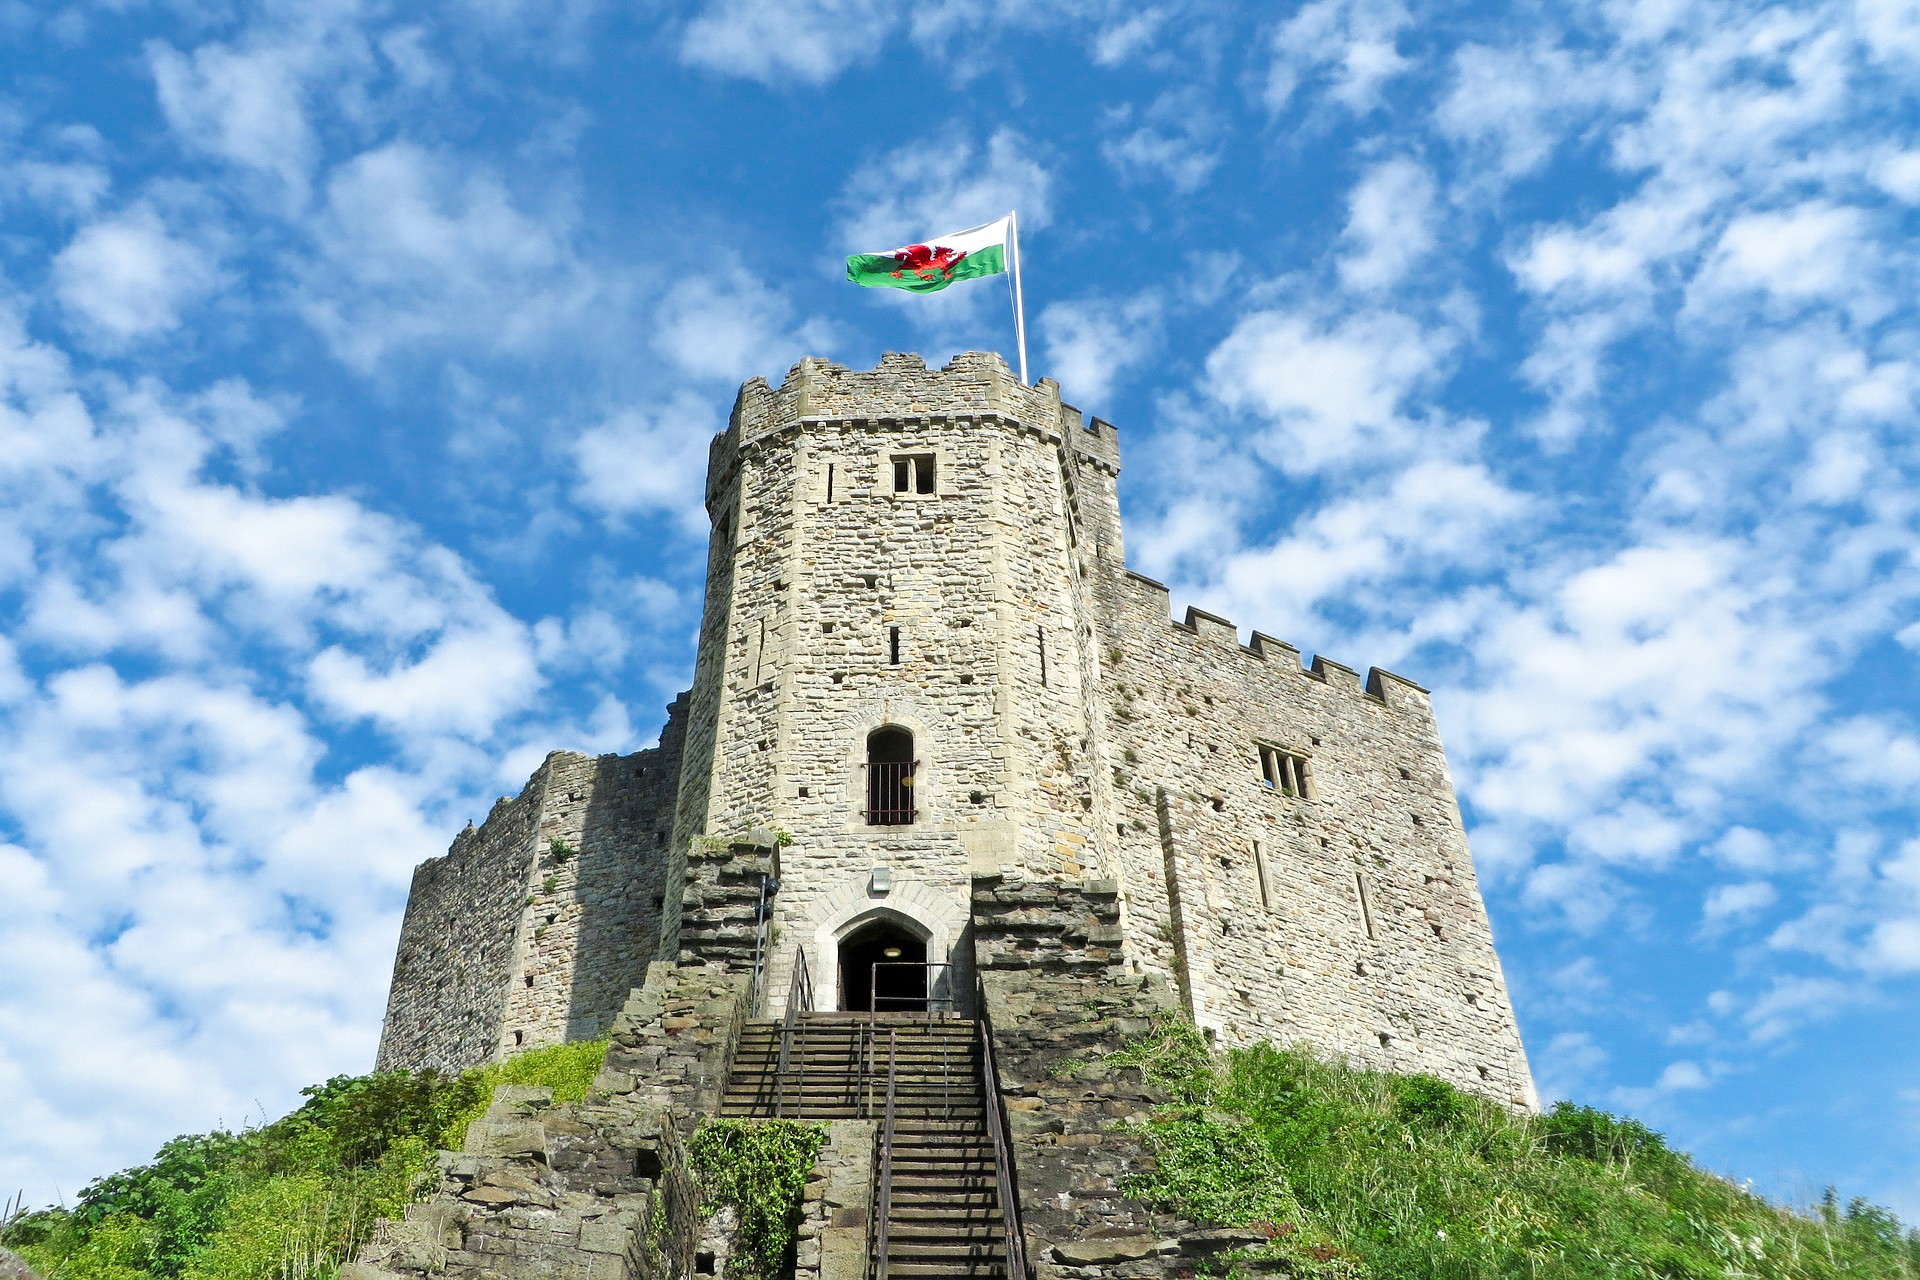 Cardiff Castle. Historic castle. Welsh flag. Wales. Blue skies. Clouds. Steps to castle. 8 Great Day Trips from Exeter You Can't Miss. Exeter day trips. England, UK. Day trips from Devon. Day trips from Exeter Devon. Day trips from Exeter UK. Day trips from Exeter by train. Day tours from Exeter. Day tours from Exeter UK. Coach day trips from Exeter. Things to do in Exeter. Things to see in Exeter. Things to do in Devon. Exeter travel blog. Exeter travel guide. Bath. Bristol. Cardiff. Plymouth. English Riviera. Jurassic Coast. Dartmoor National Park. Cornwall. Click through to read more...